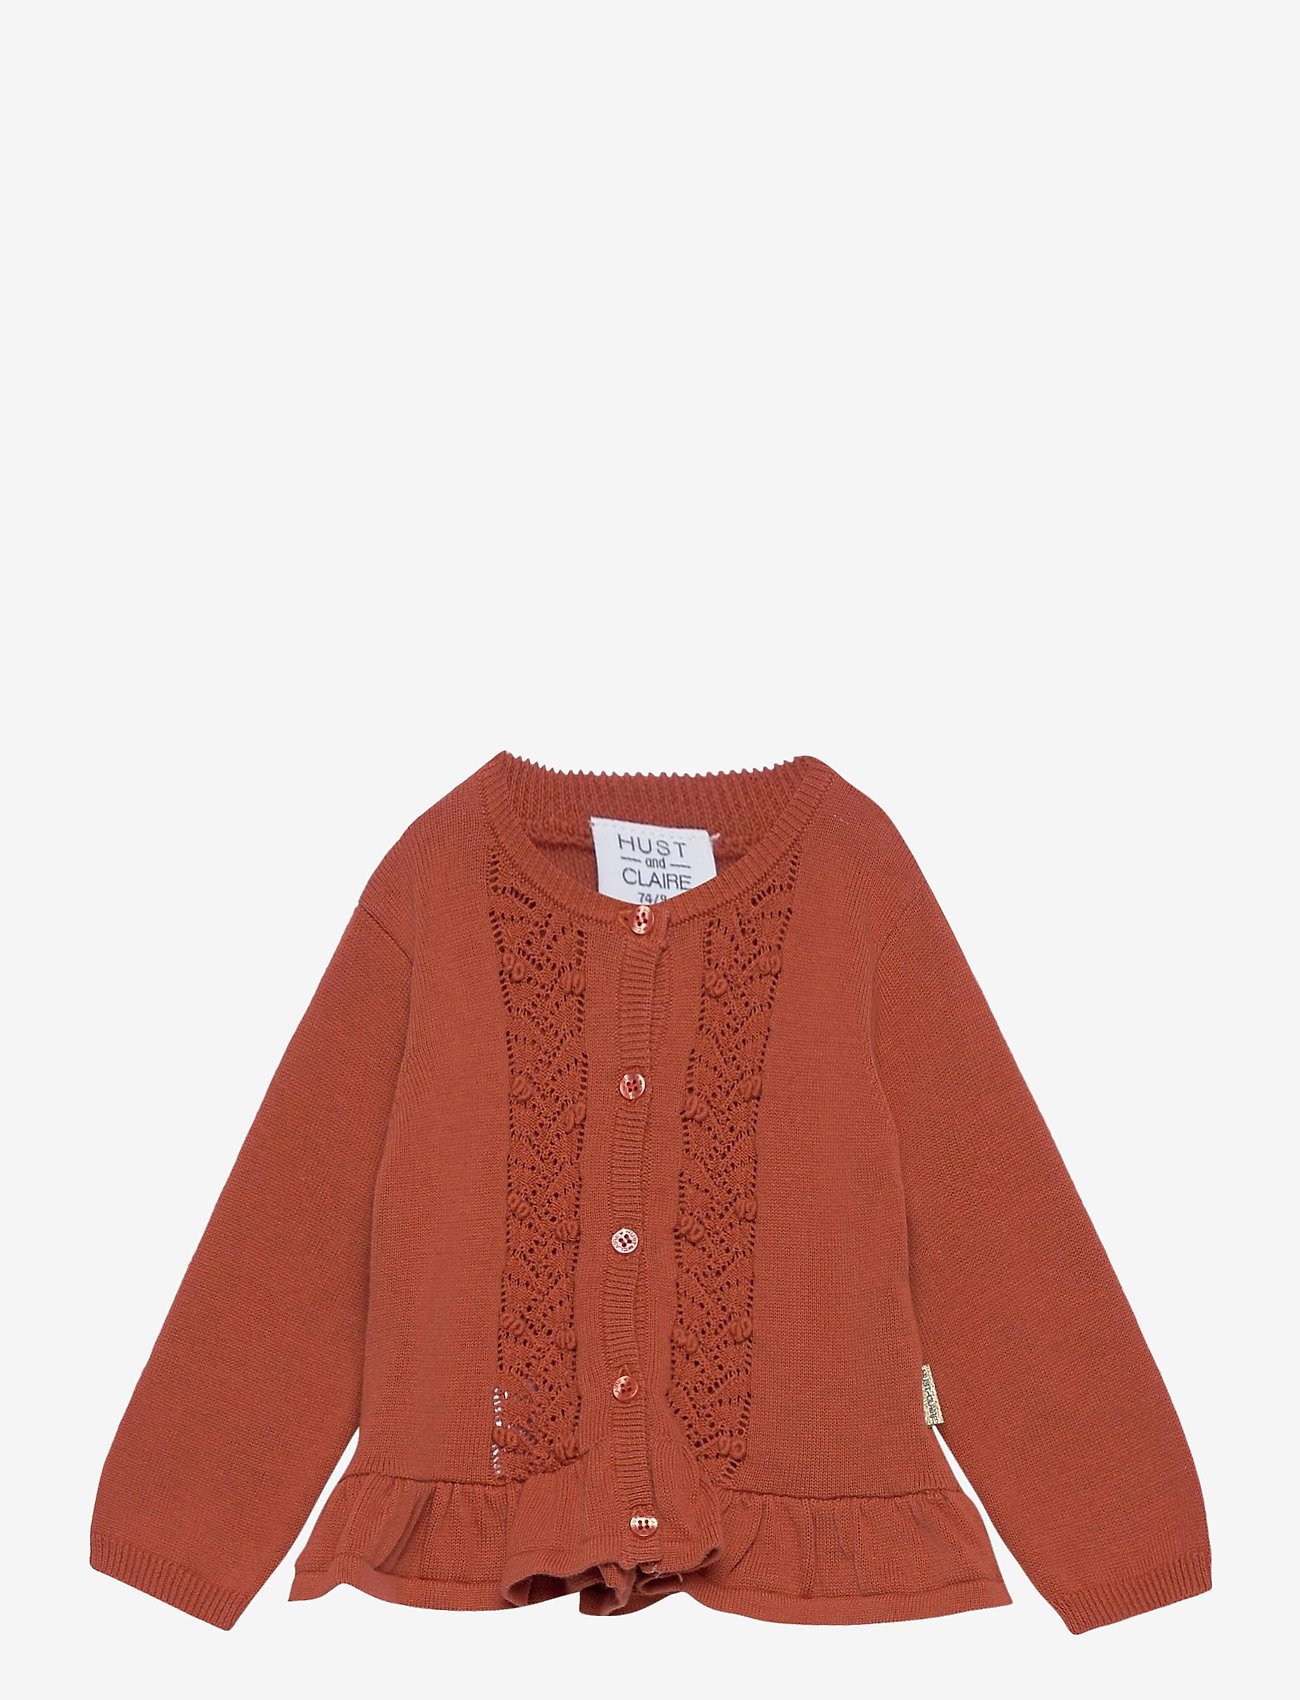 Hust & Claire - Candie - Cardigan - gilets - rusty - 0